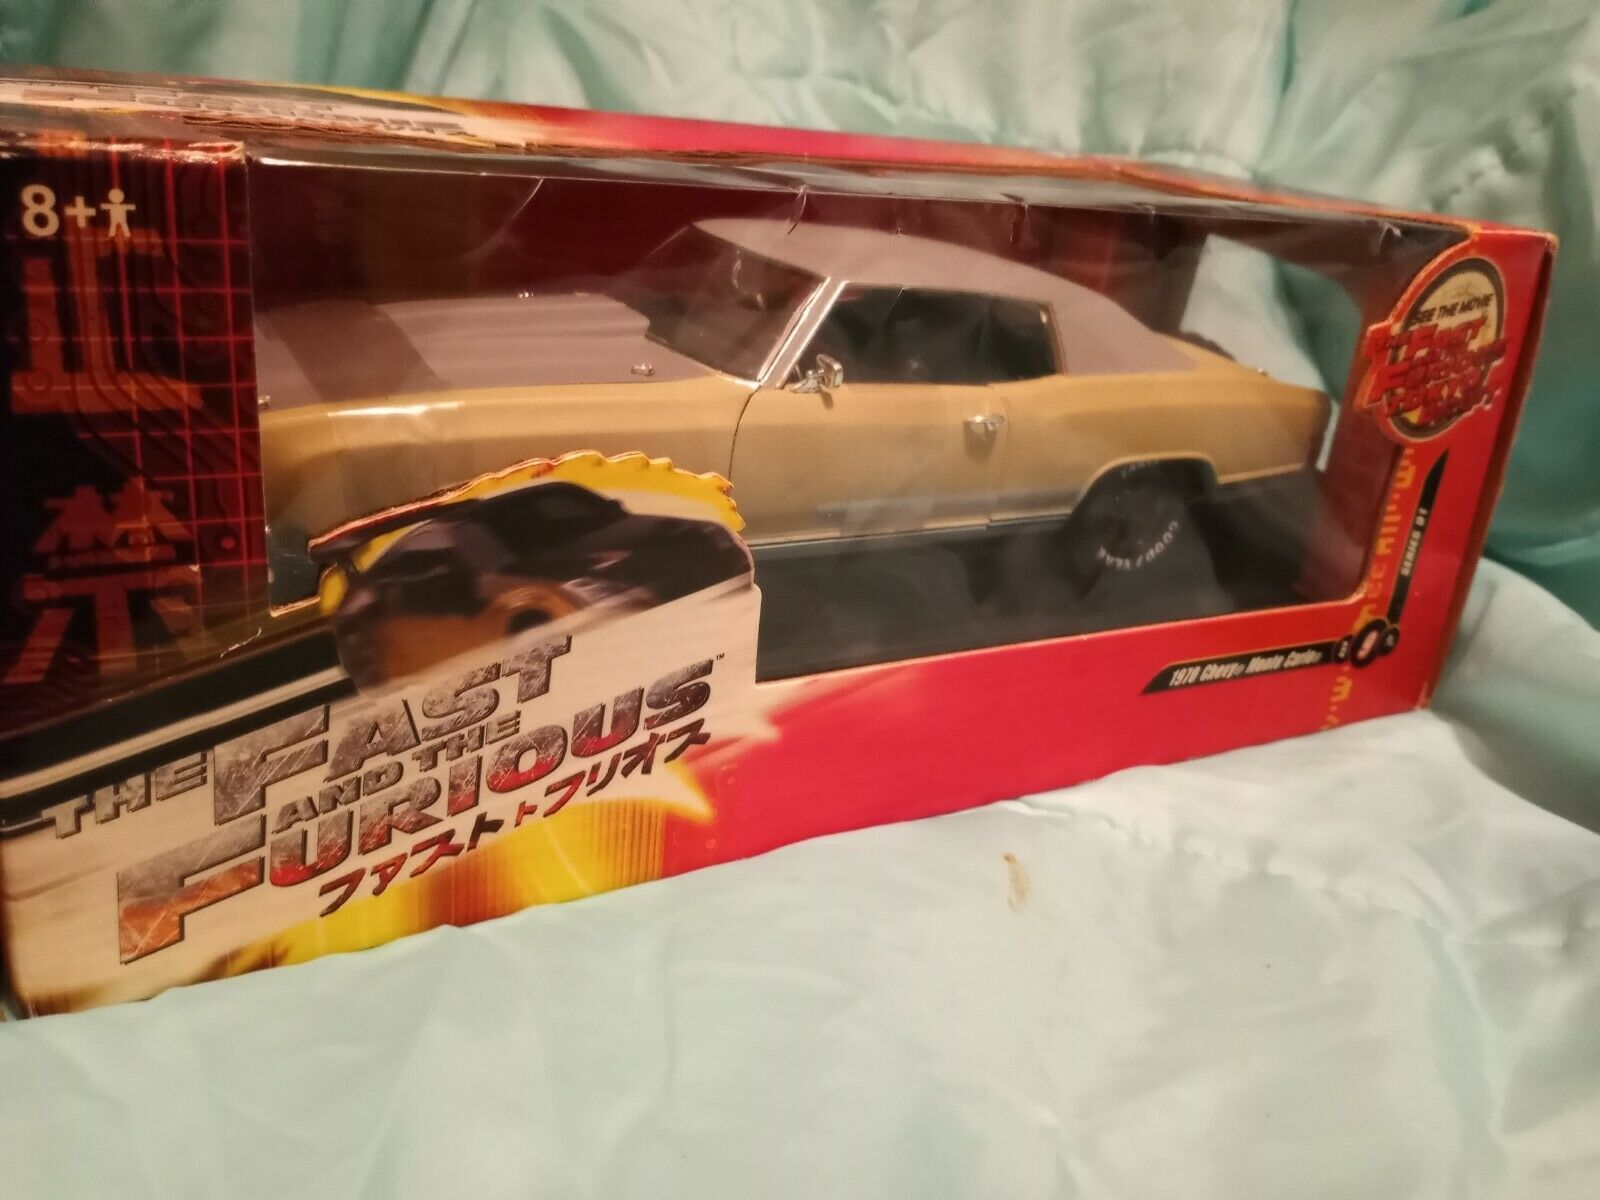 1970 monte carlo has cowl hood rare the fast and the furious tokyo drift joyride for sale online 1970 monte carlo has cowl hood rare the fast and the furious tokyo drift joyride